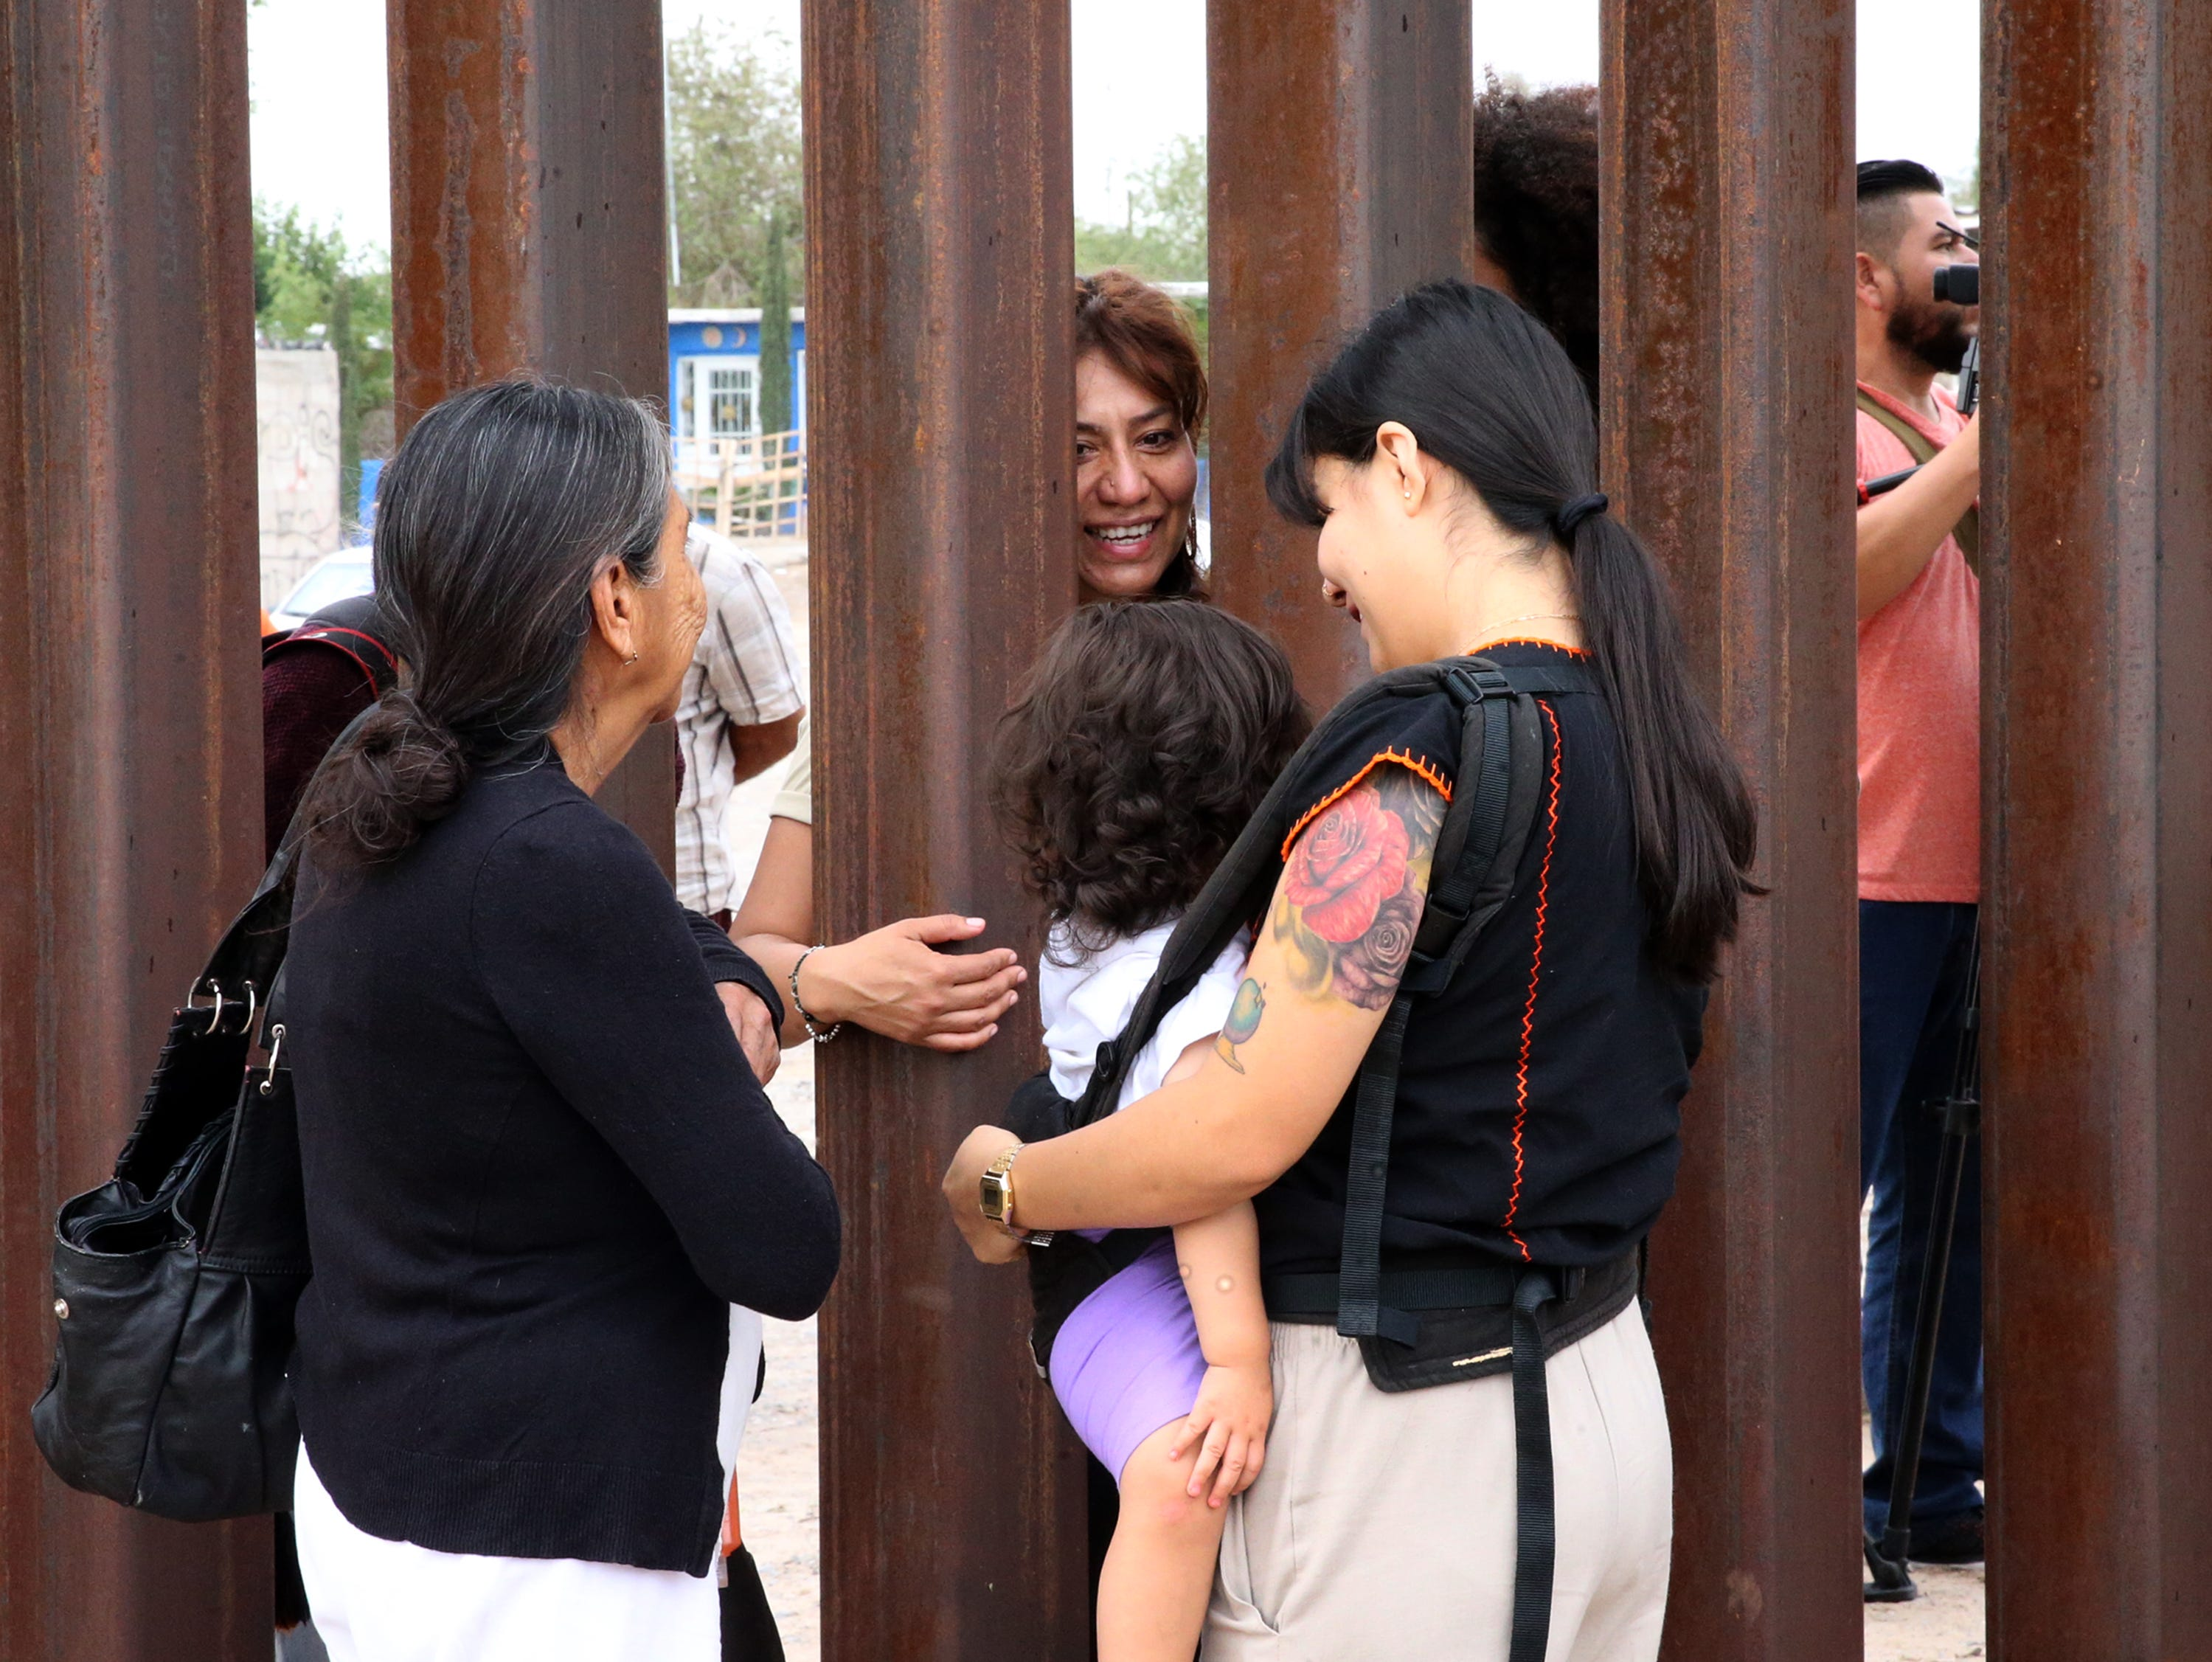 A family visits on the border fence in Sunland Park, N.M. Friday.